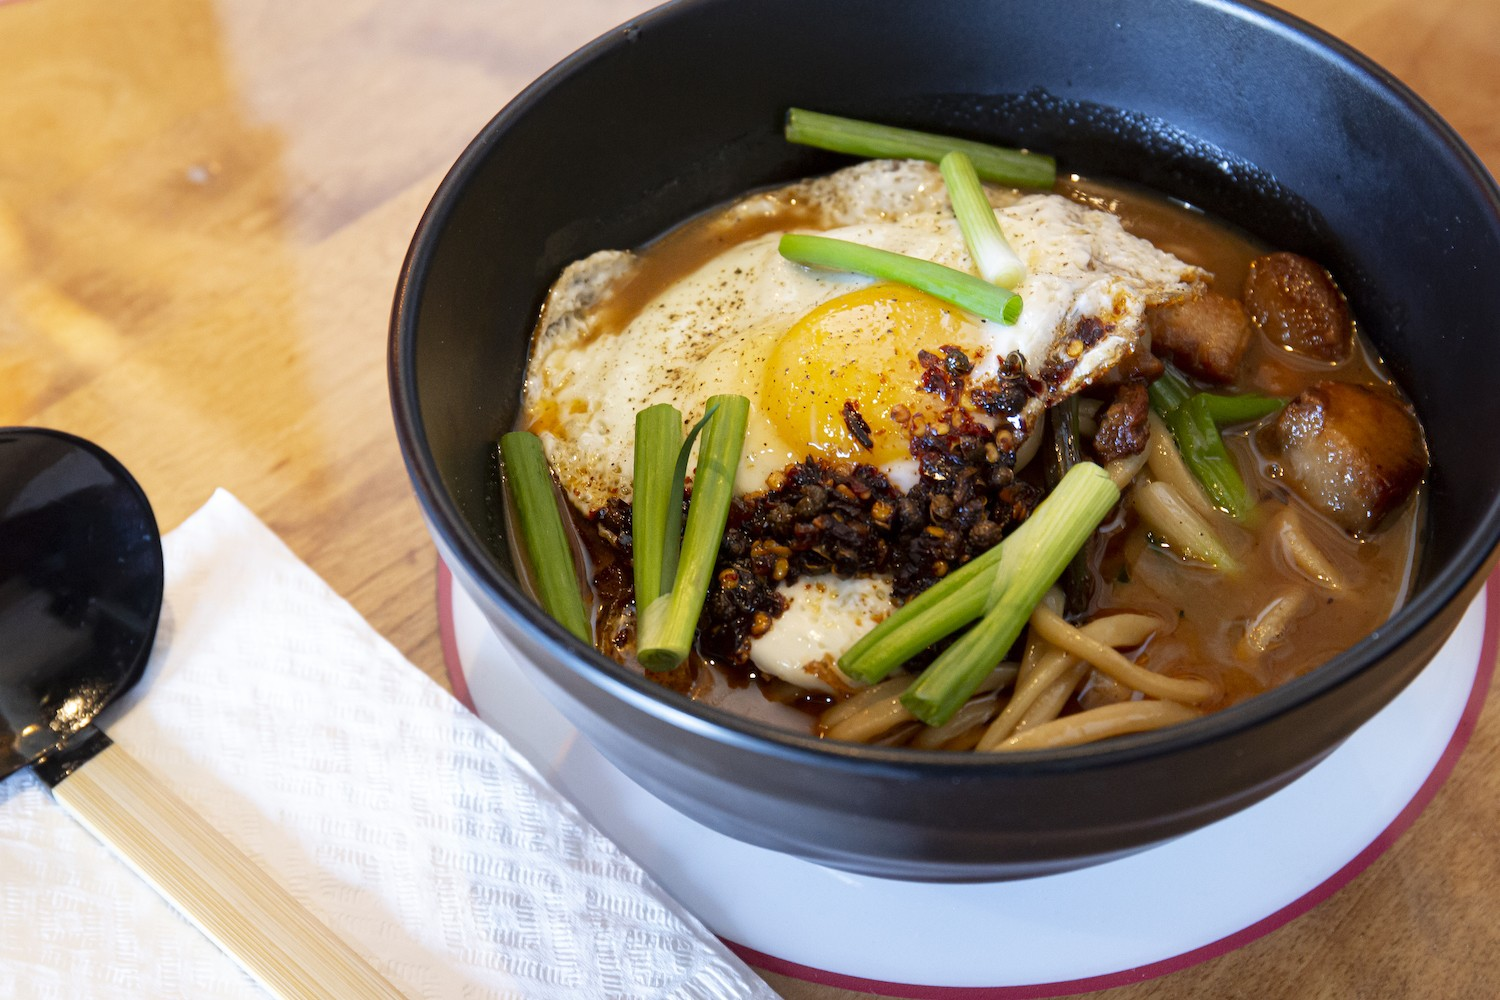 The Kingpin noodle bowl from Orlando Meats - PHOTO BY ROB BARTLETT